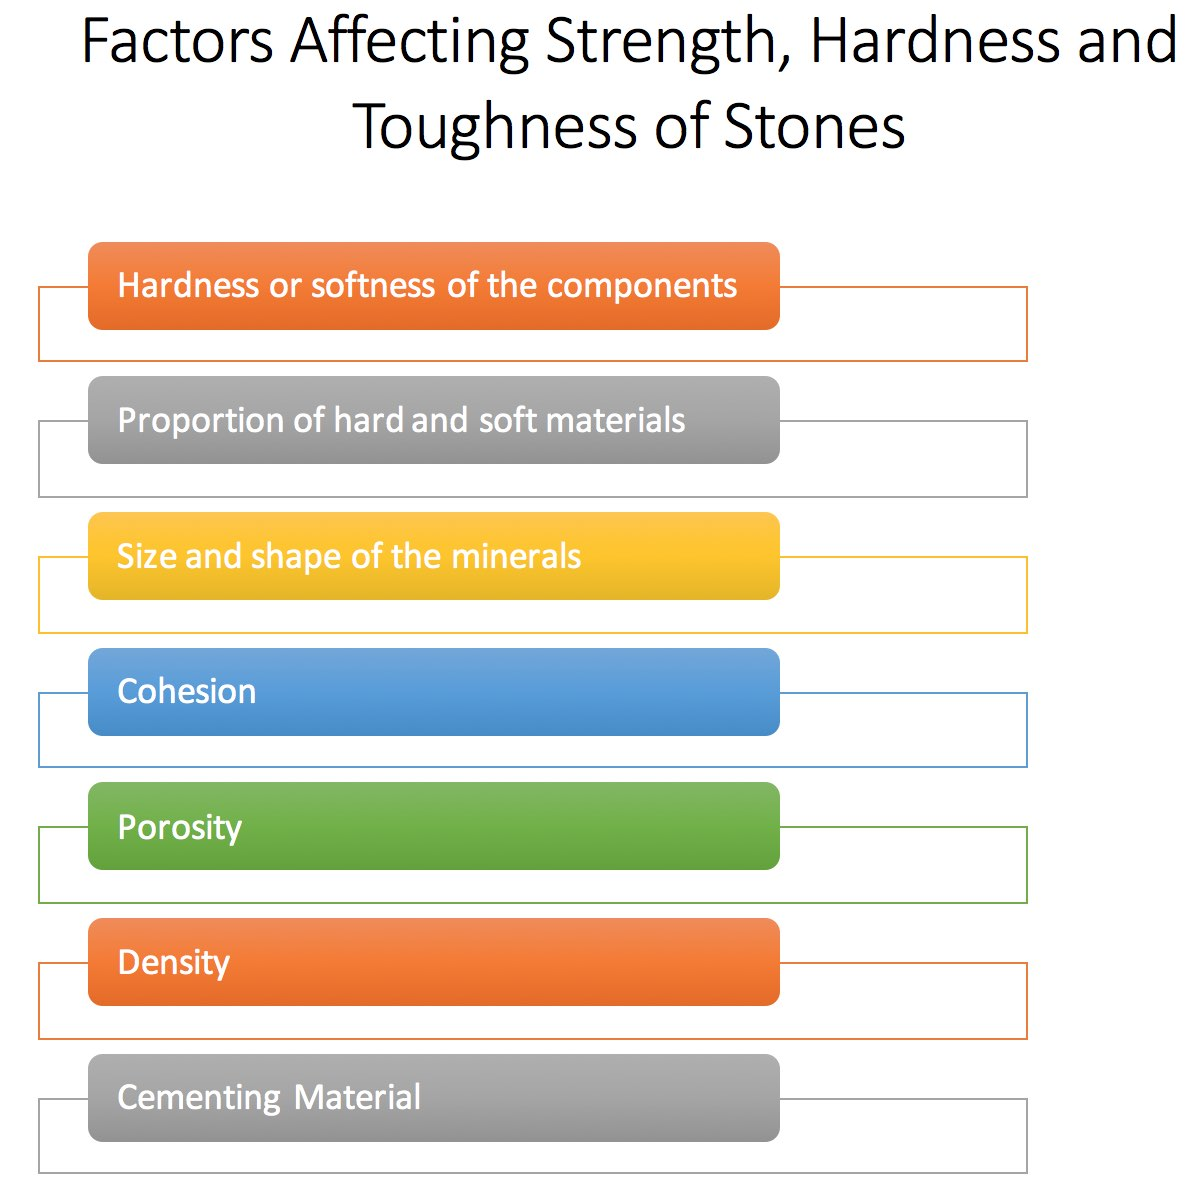 Factors Affecting Strength of Stones